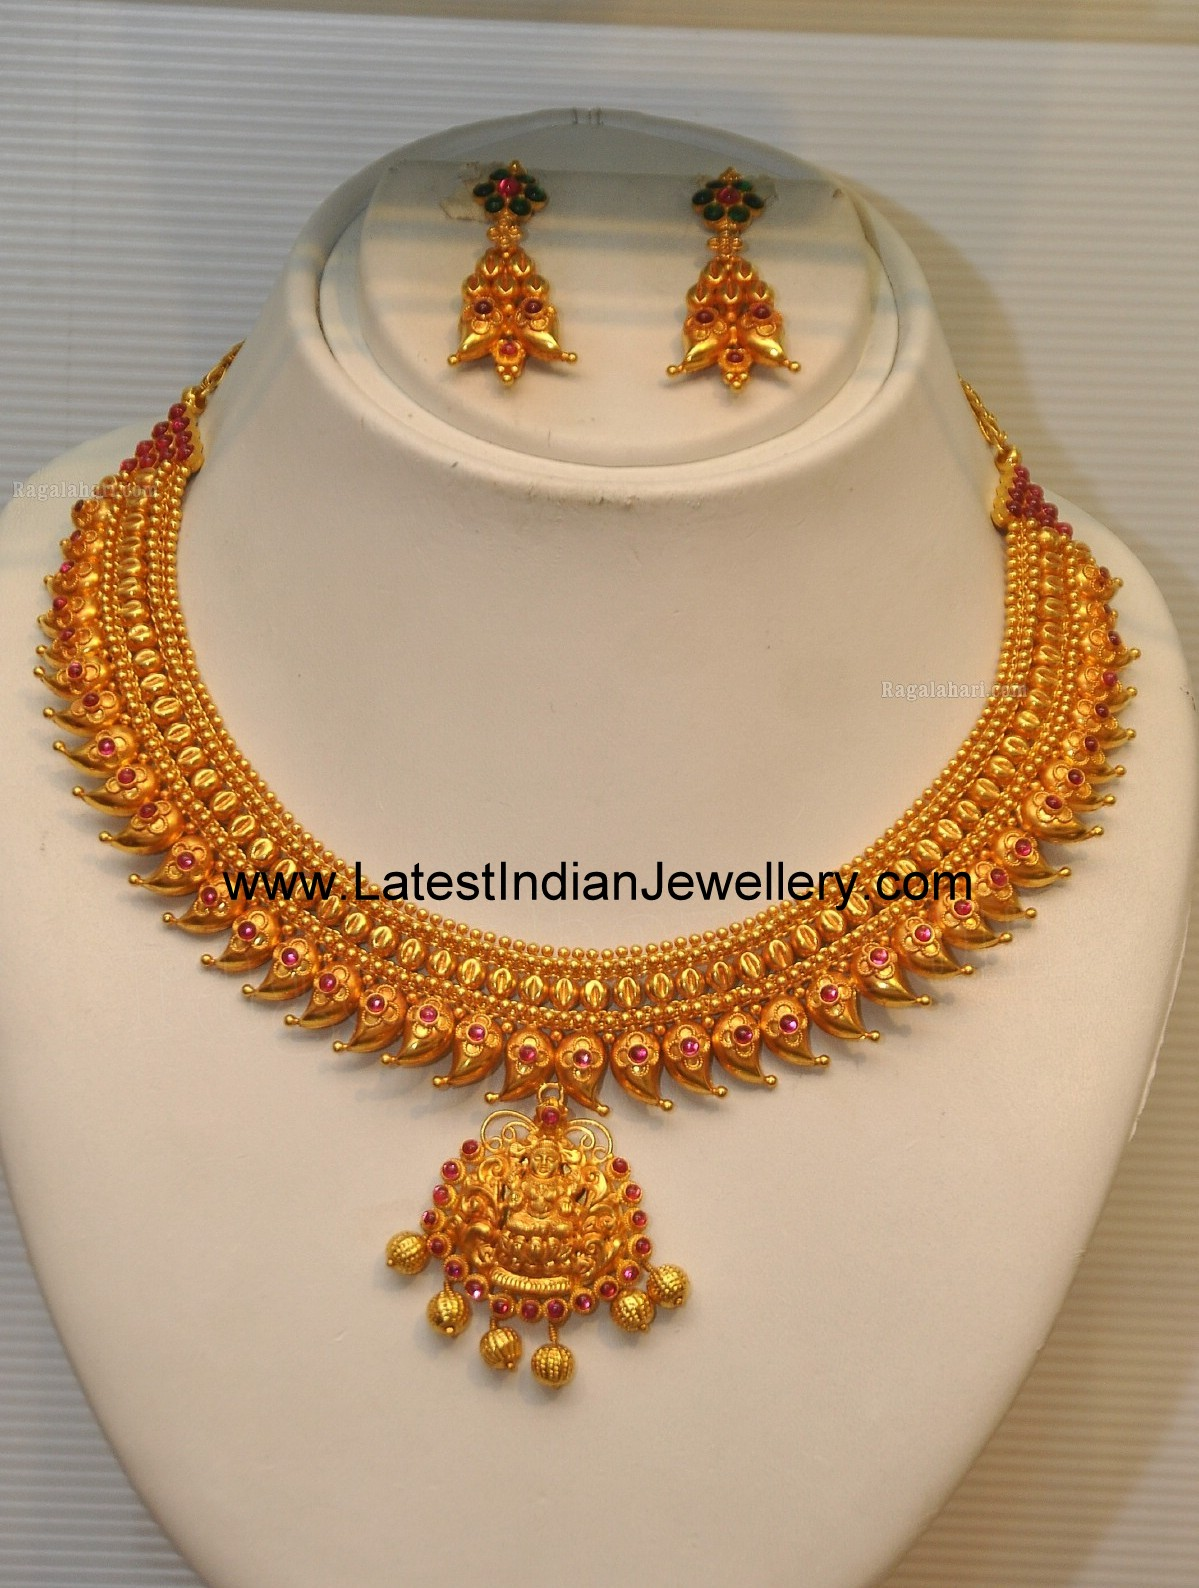 Heavy Gold Short Temple Jewellery Necklace in Mango Design